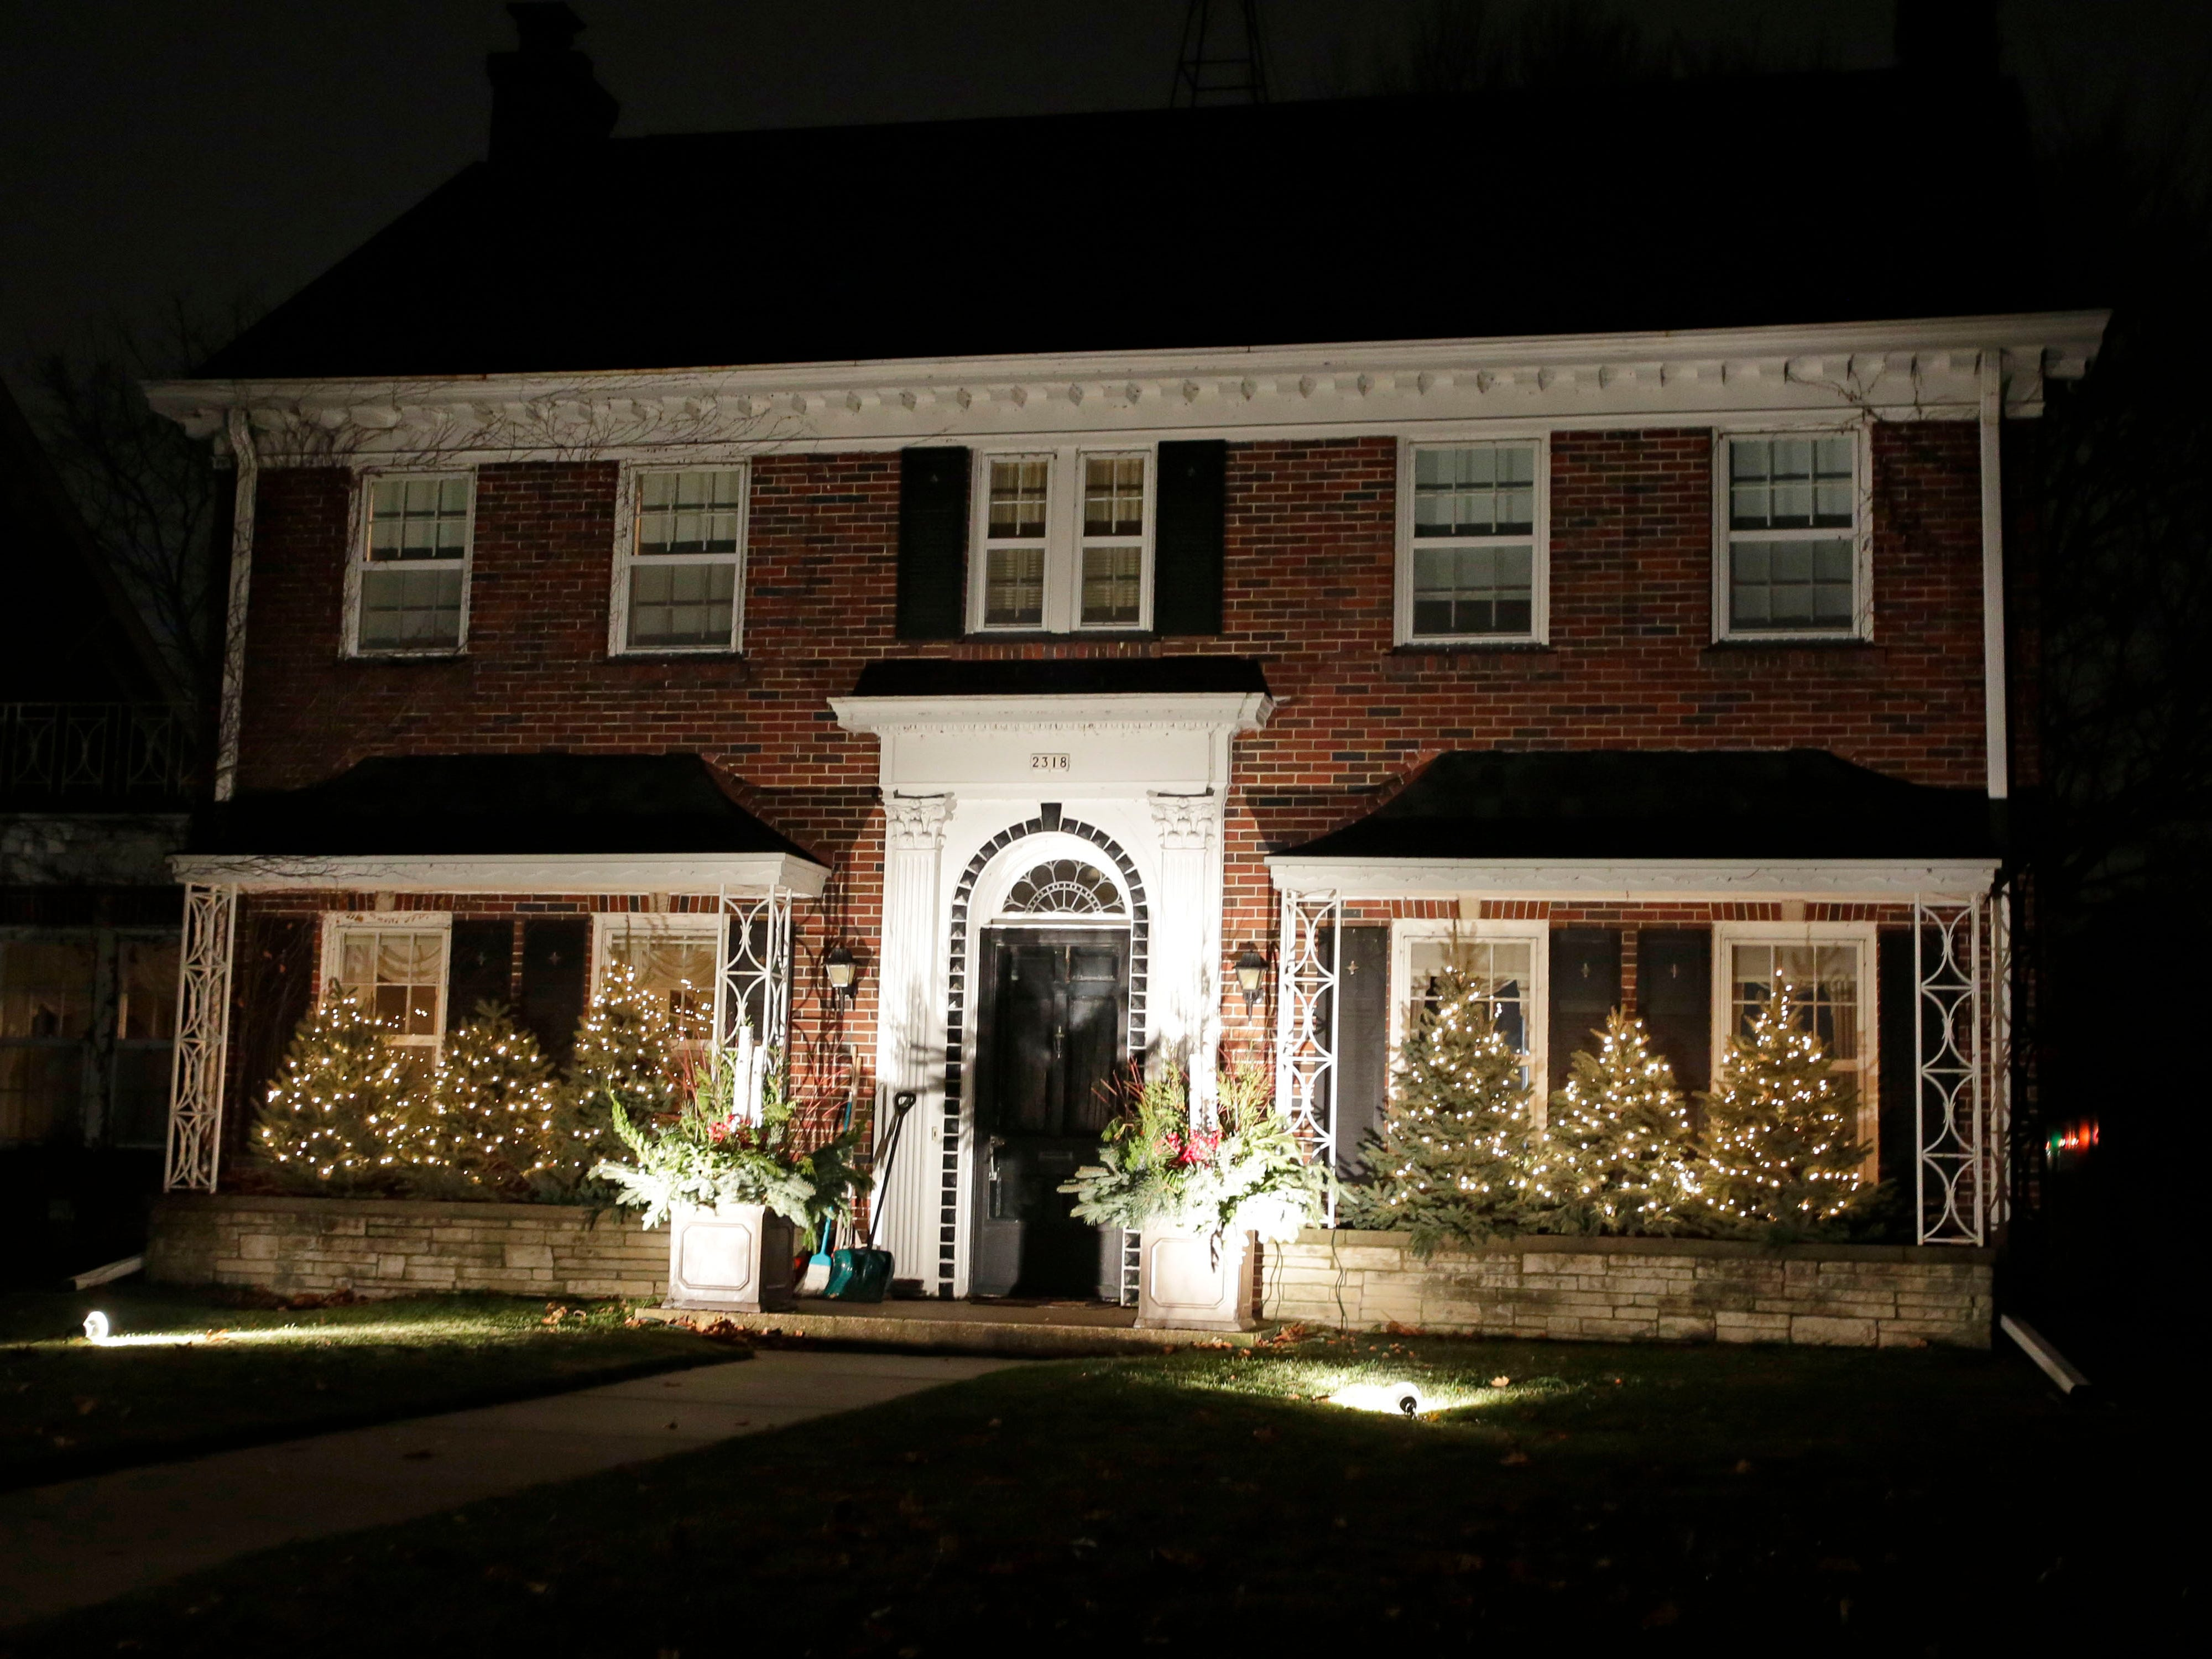 A home on North 6th and Geele, is awash with light for the holidays, Wednesday, December 12, 2018, in Sheboygan, Wis.